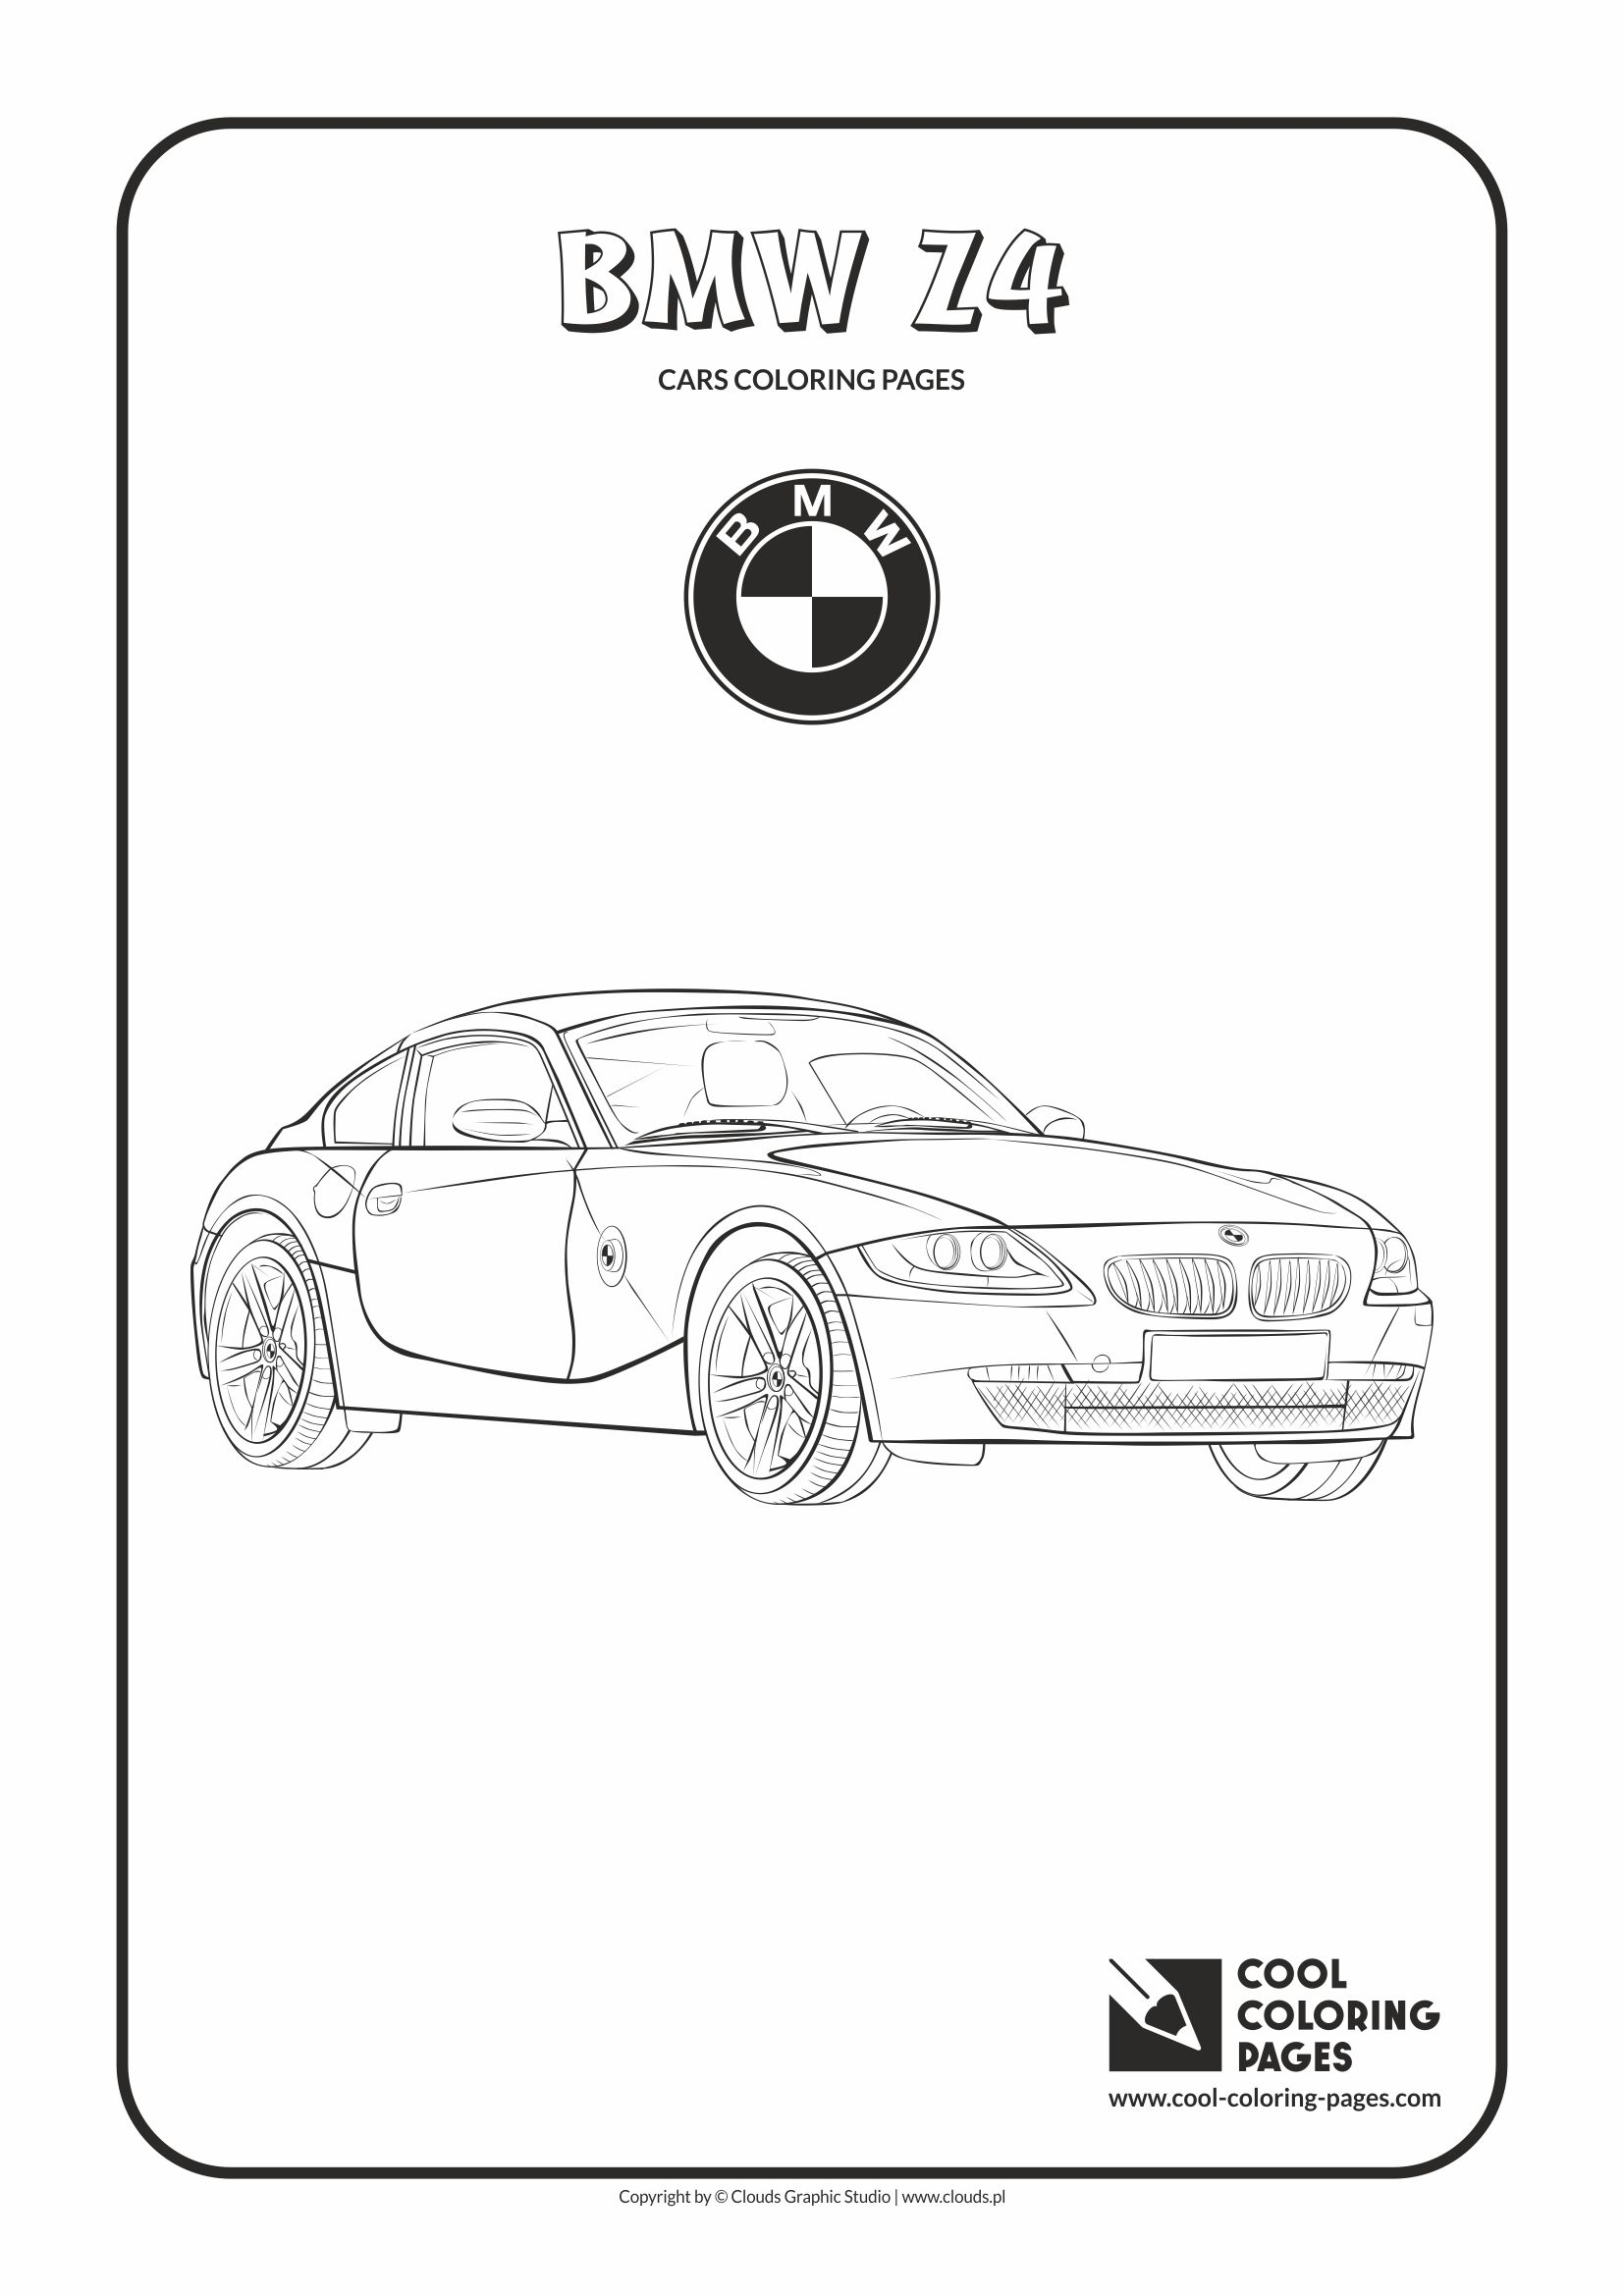 Cool Coloring Pages Cars Coloring Pages